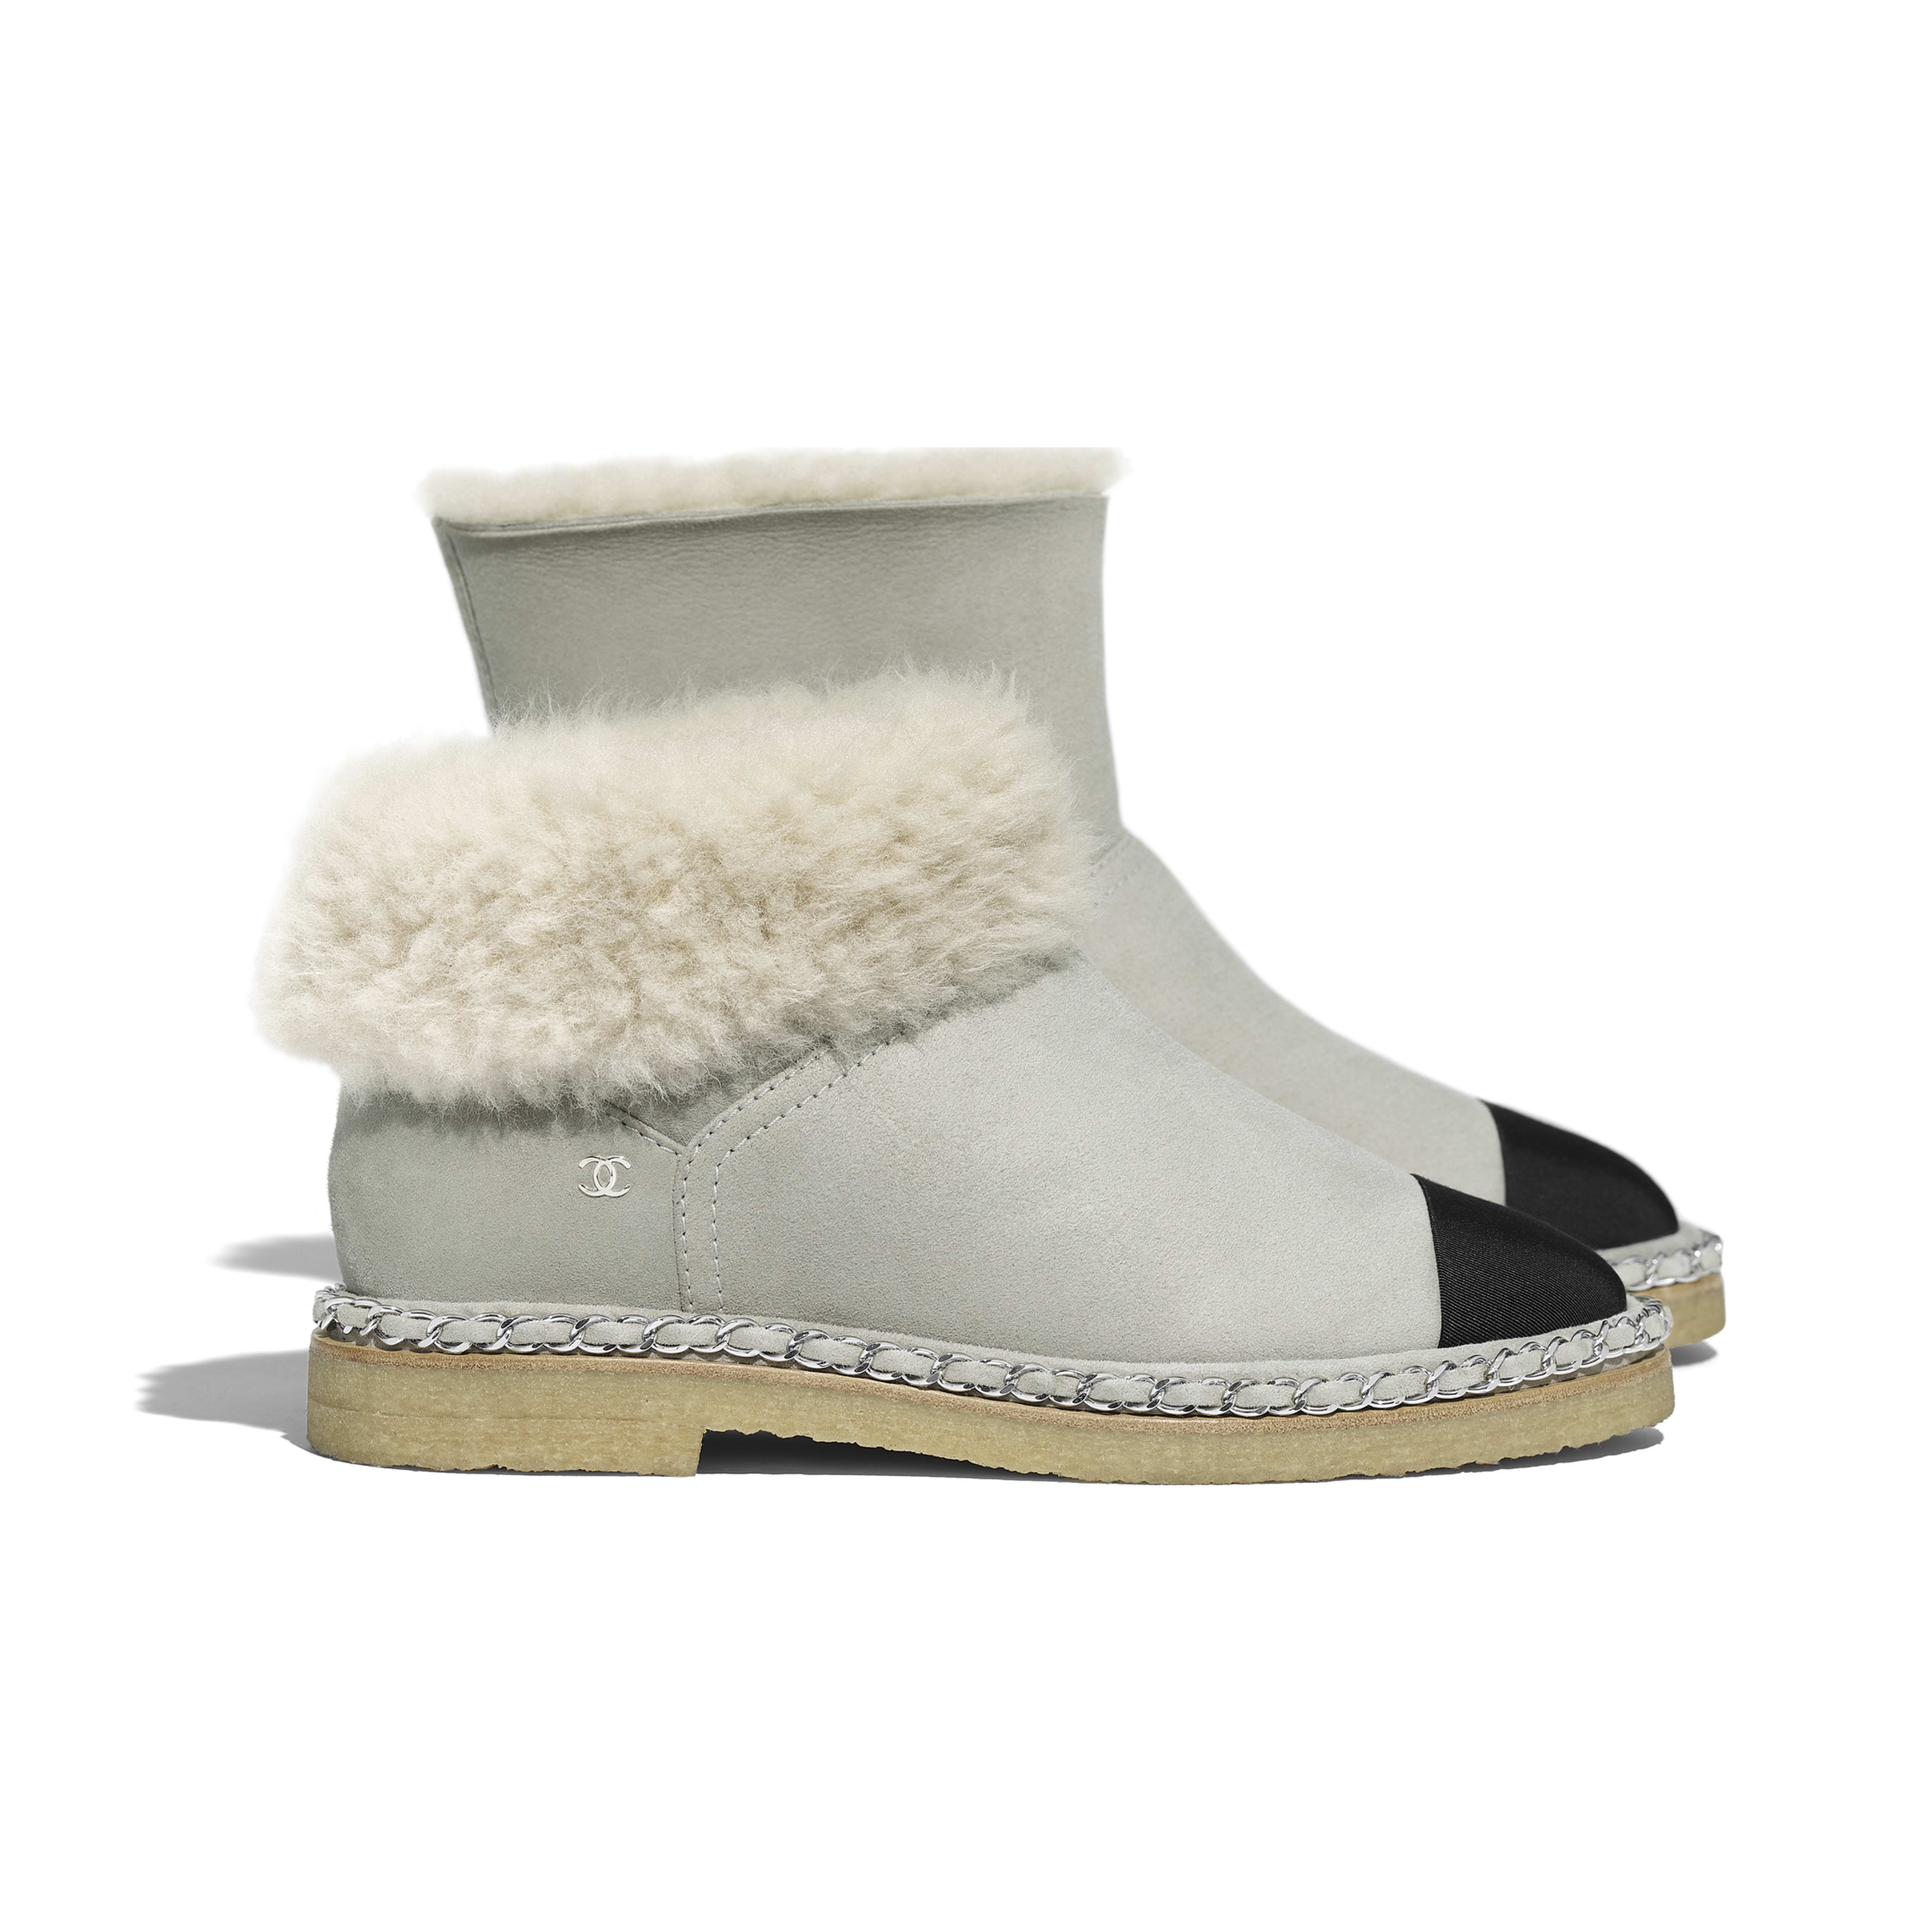 Ankle Boots - Gray & Black - Shearling Lambskin & Grosgrain - Extra view - see full sized version